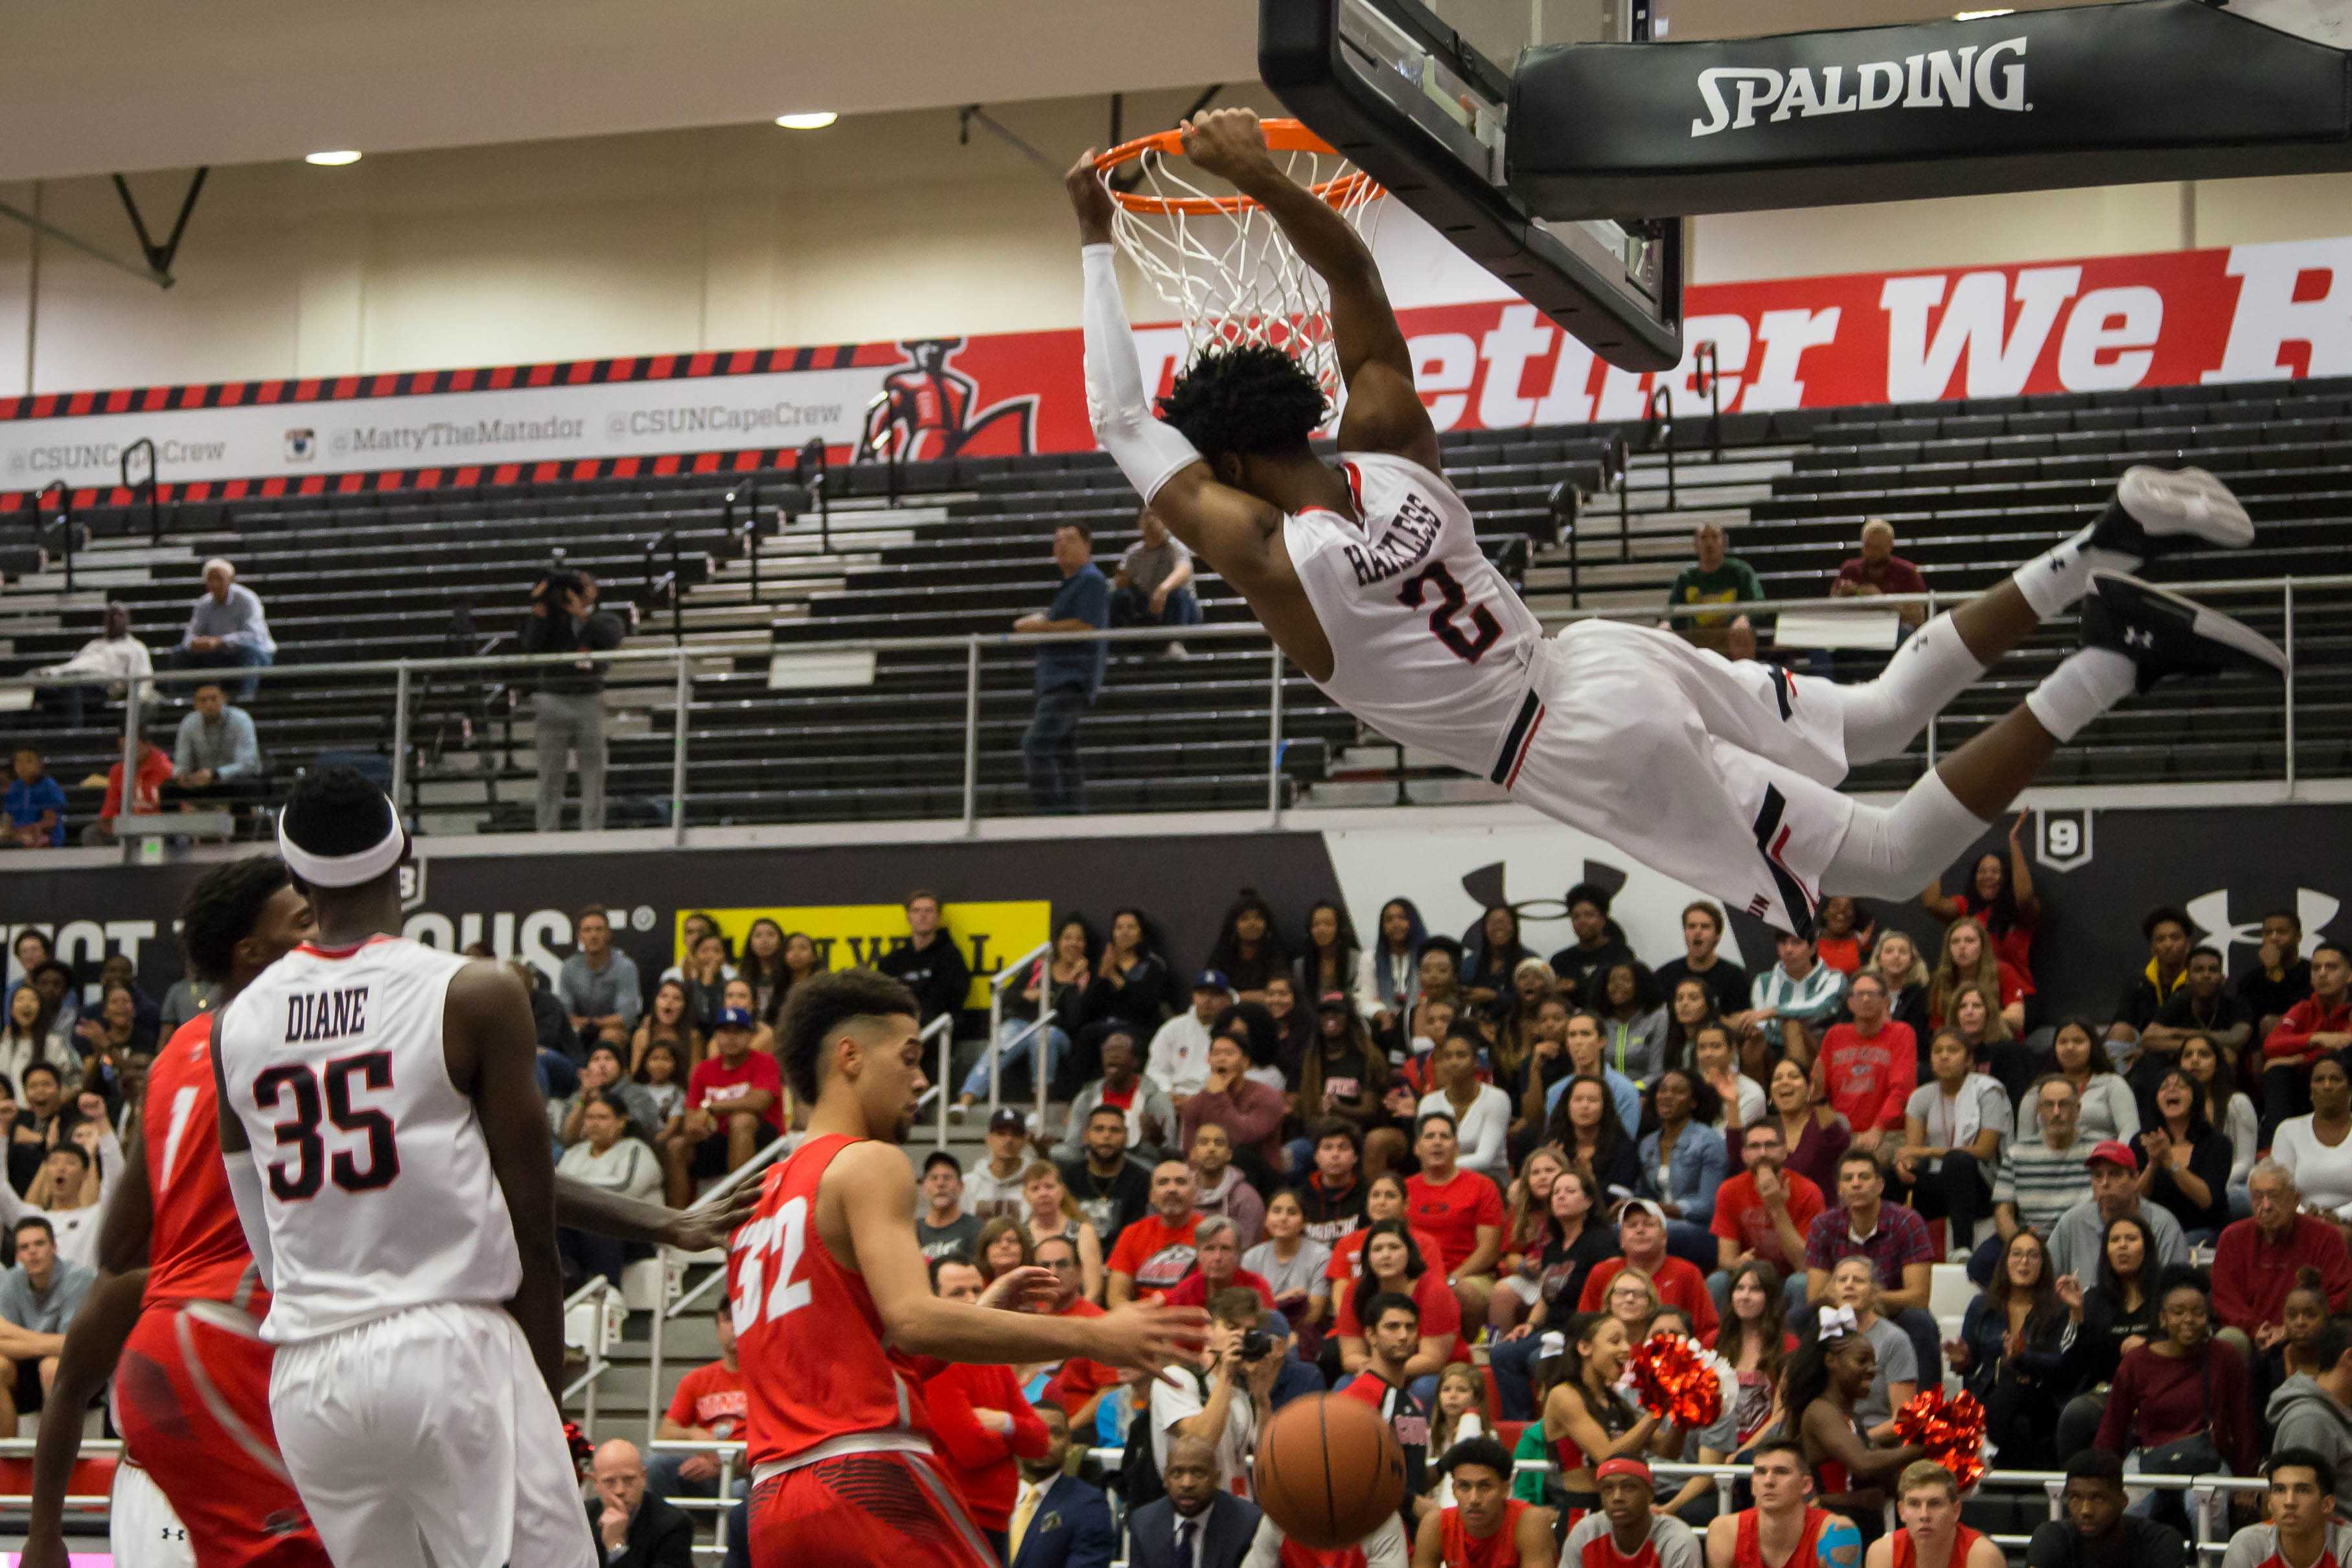 csun athlete dunking